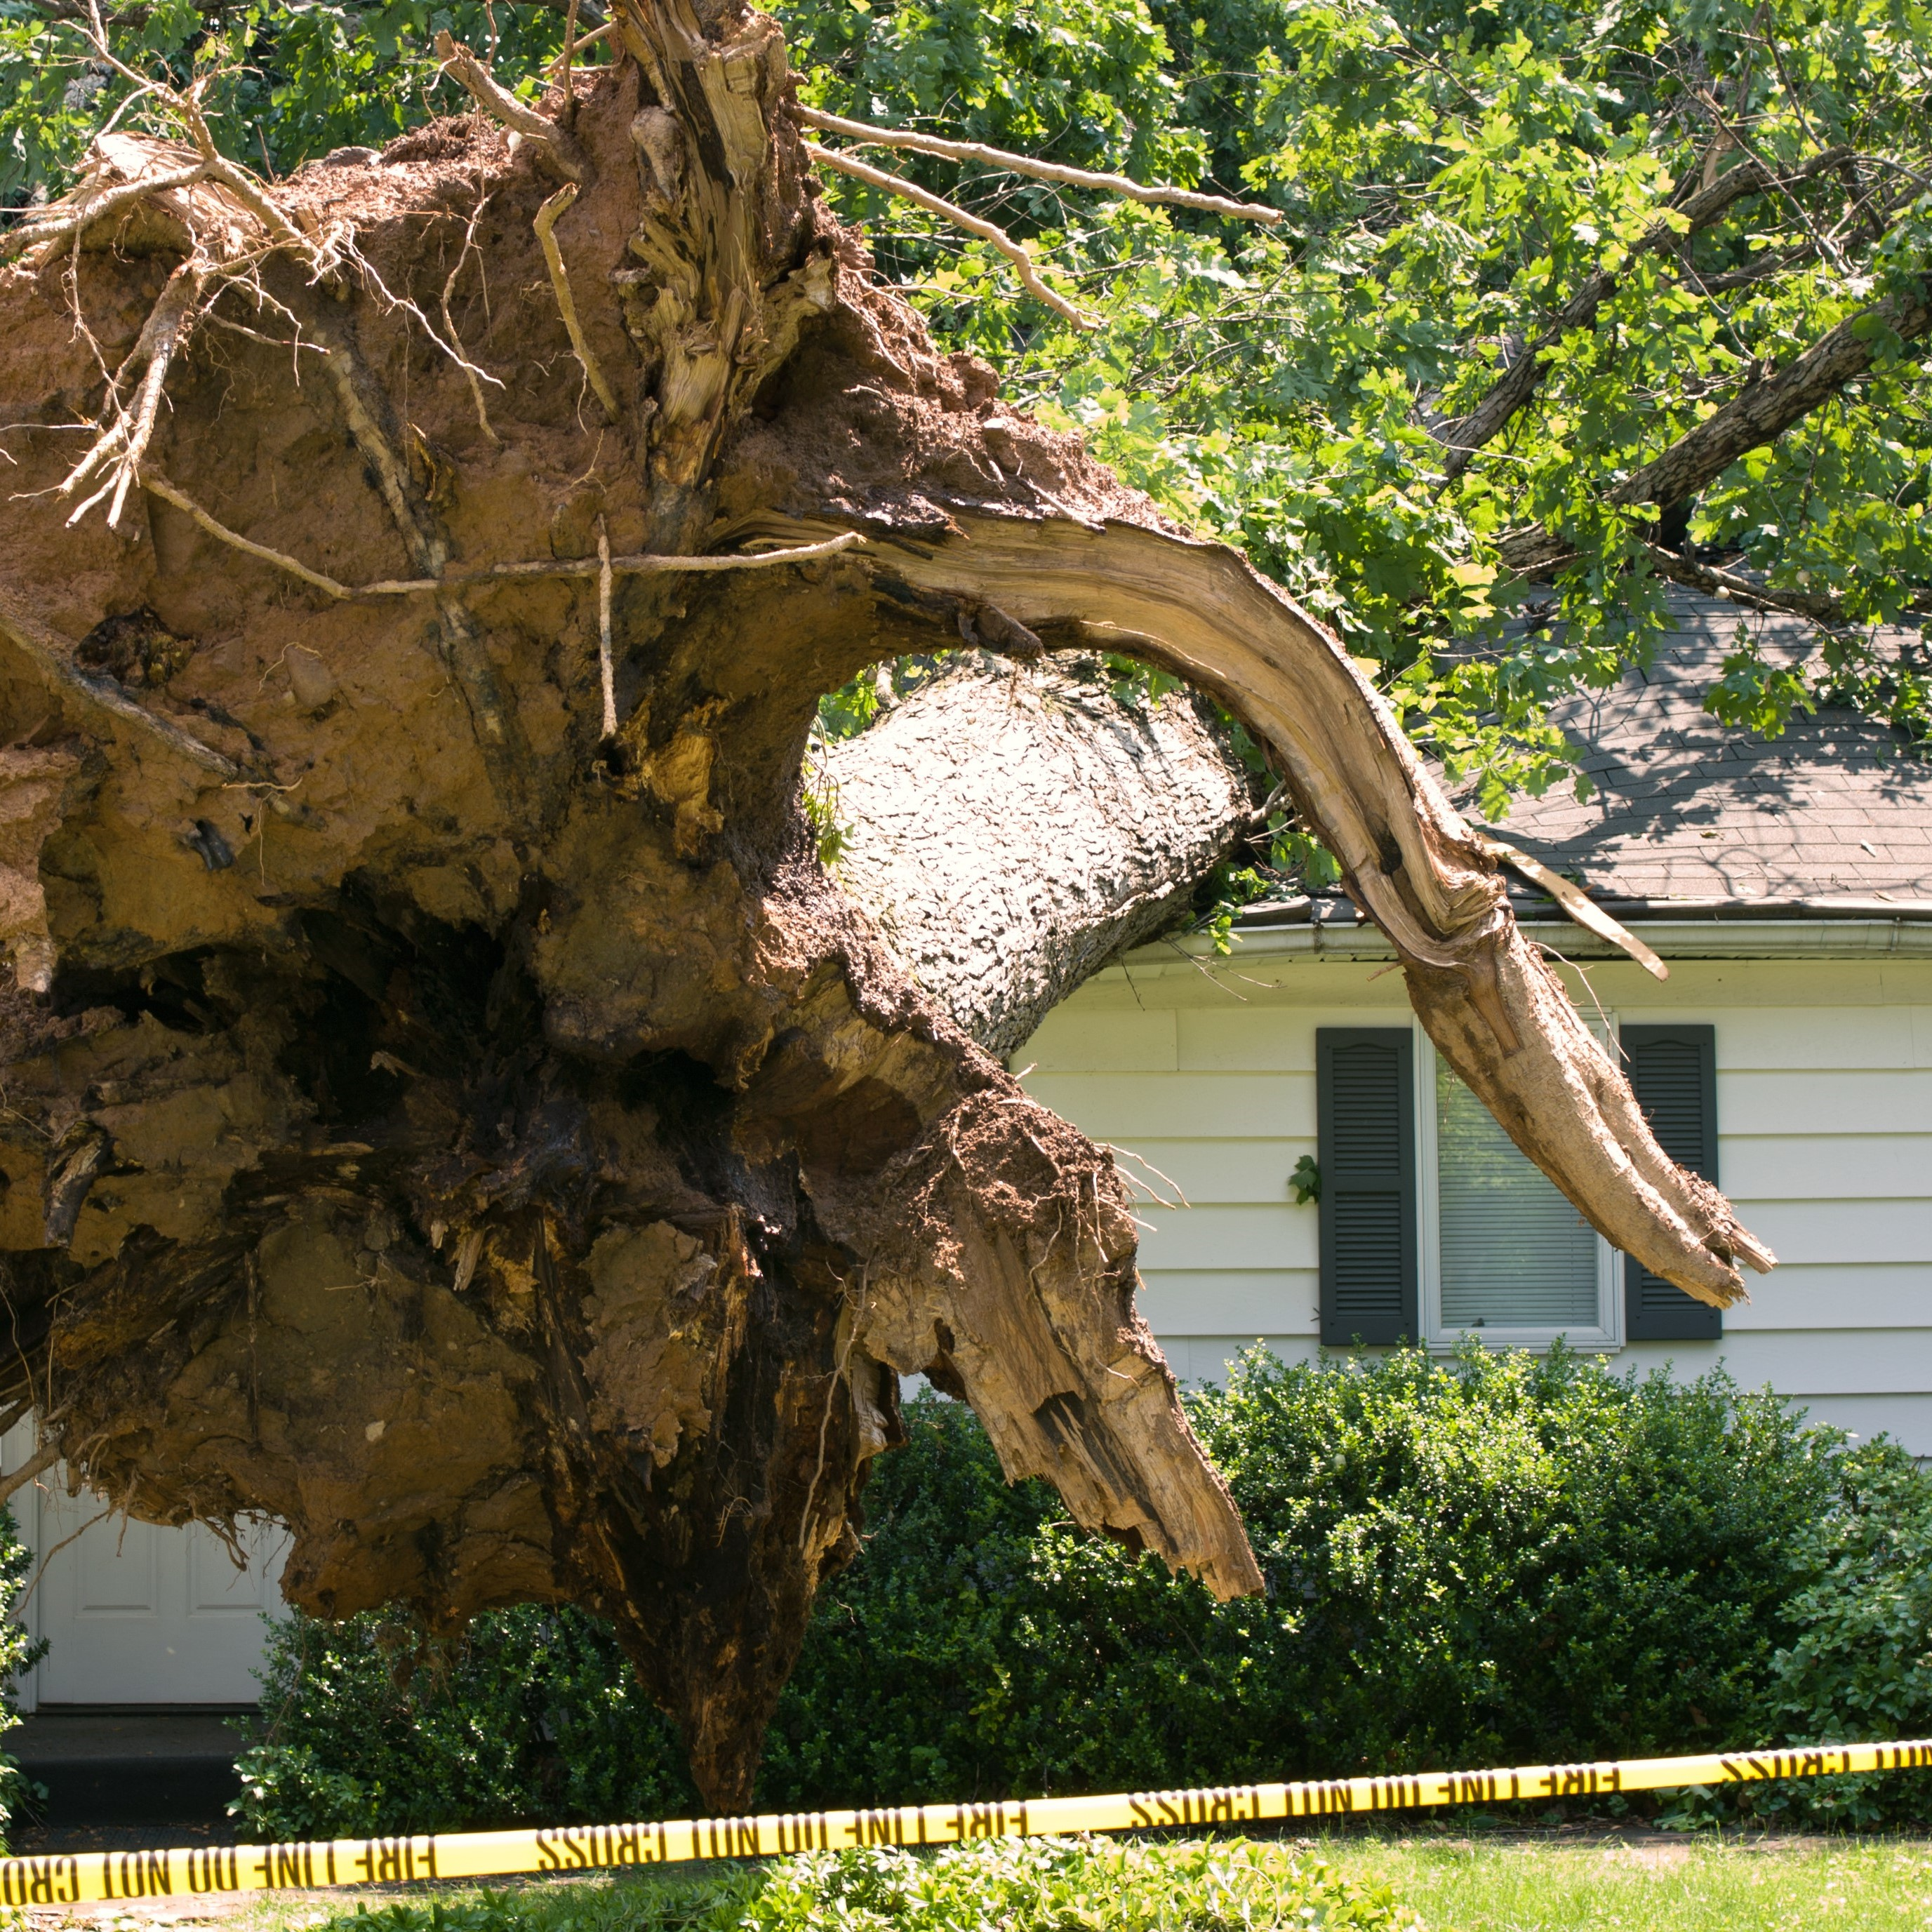 A tree that has fallen on a roof.